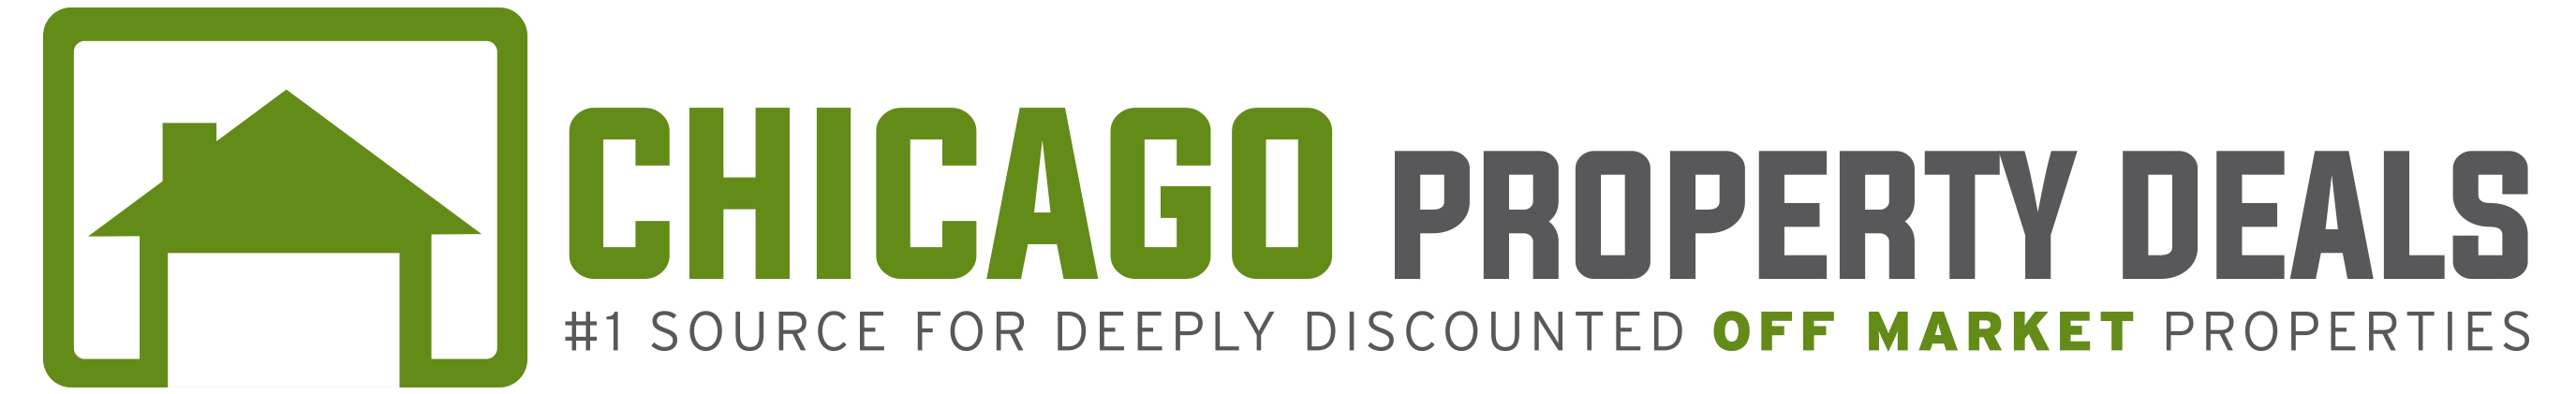 Chicago Property Deals logo